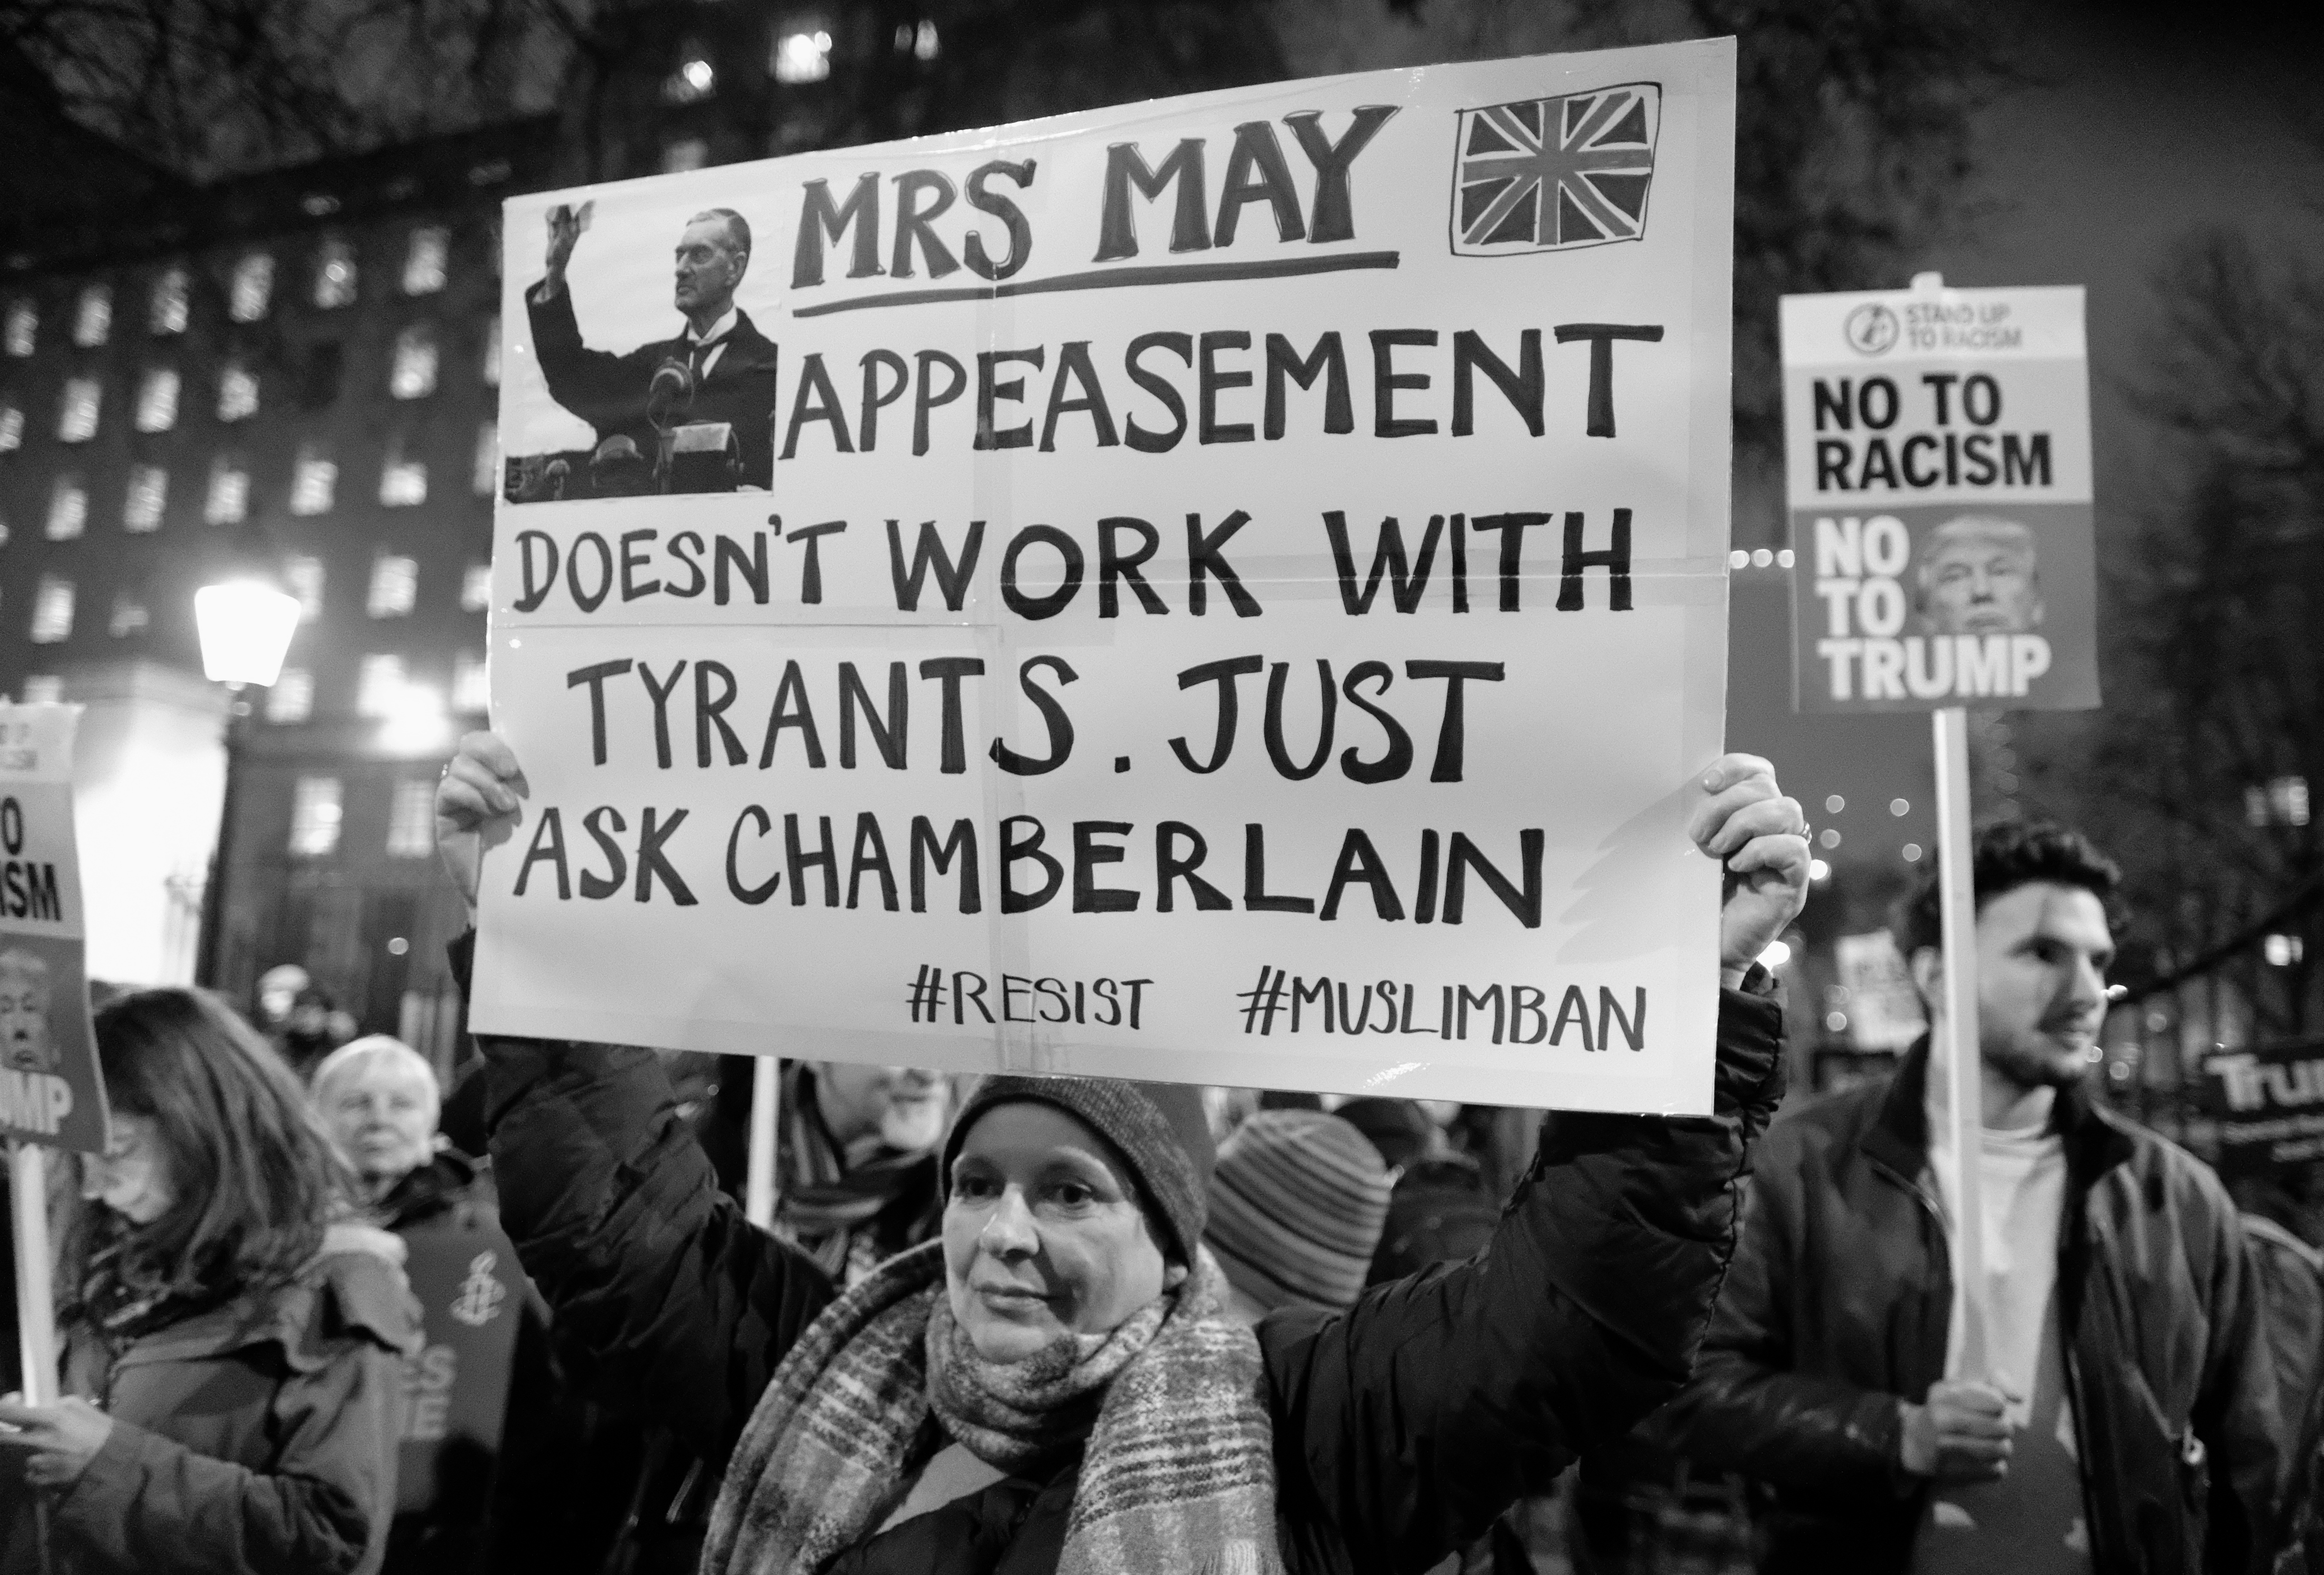 January 2017 London rally asking May to reject Trump's Muslim ban (photo: Alisdare Hickson, CC)